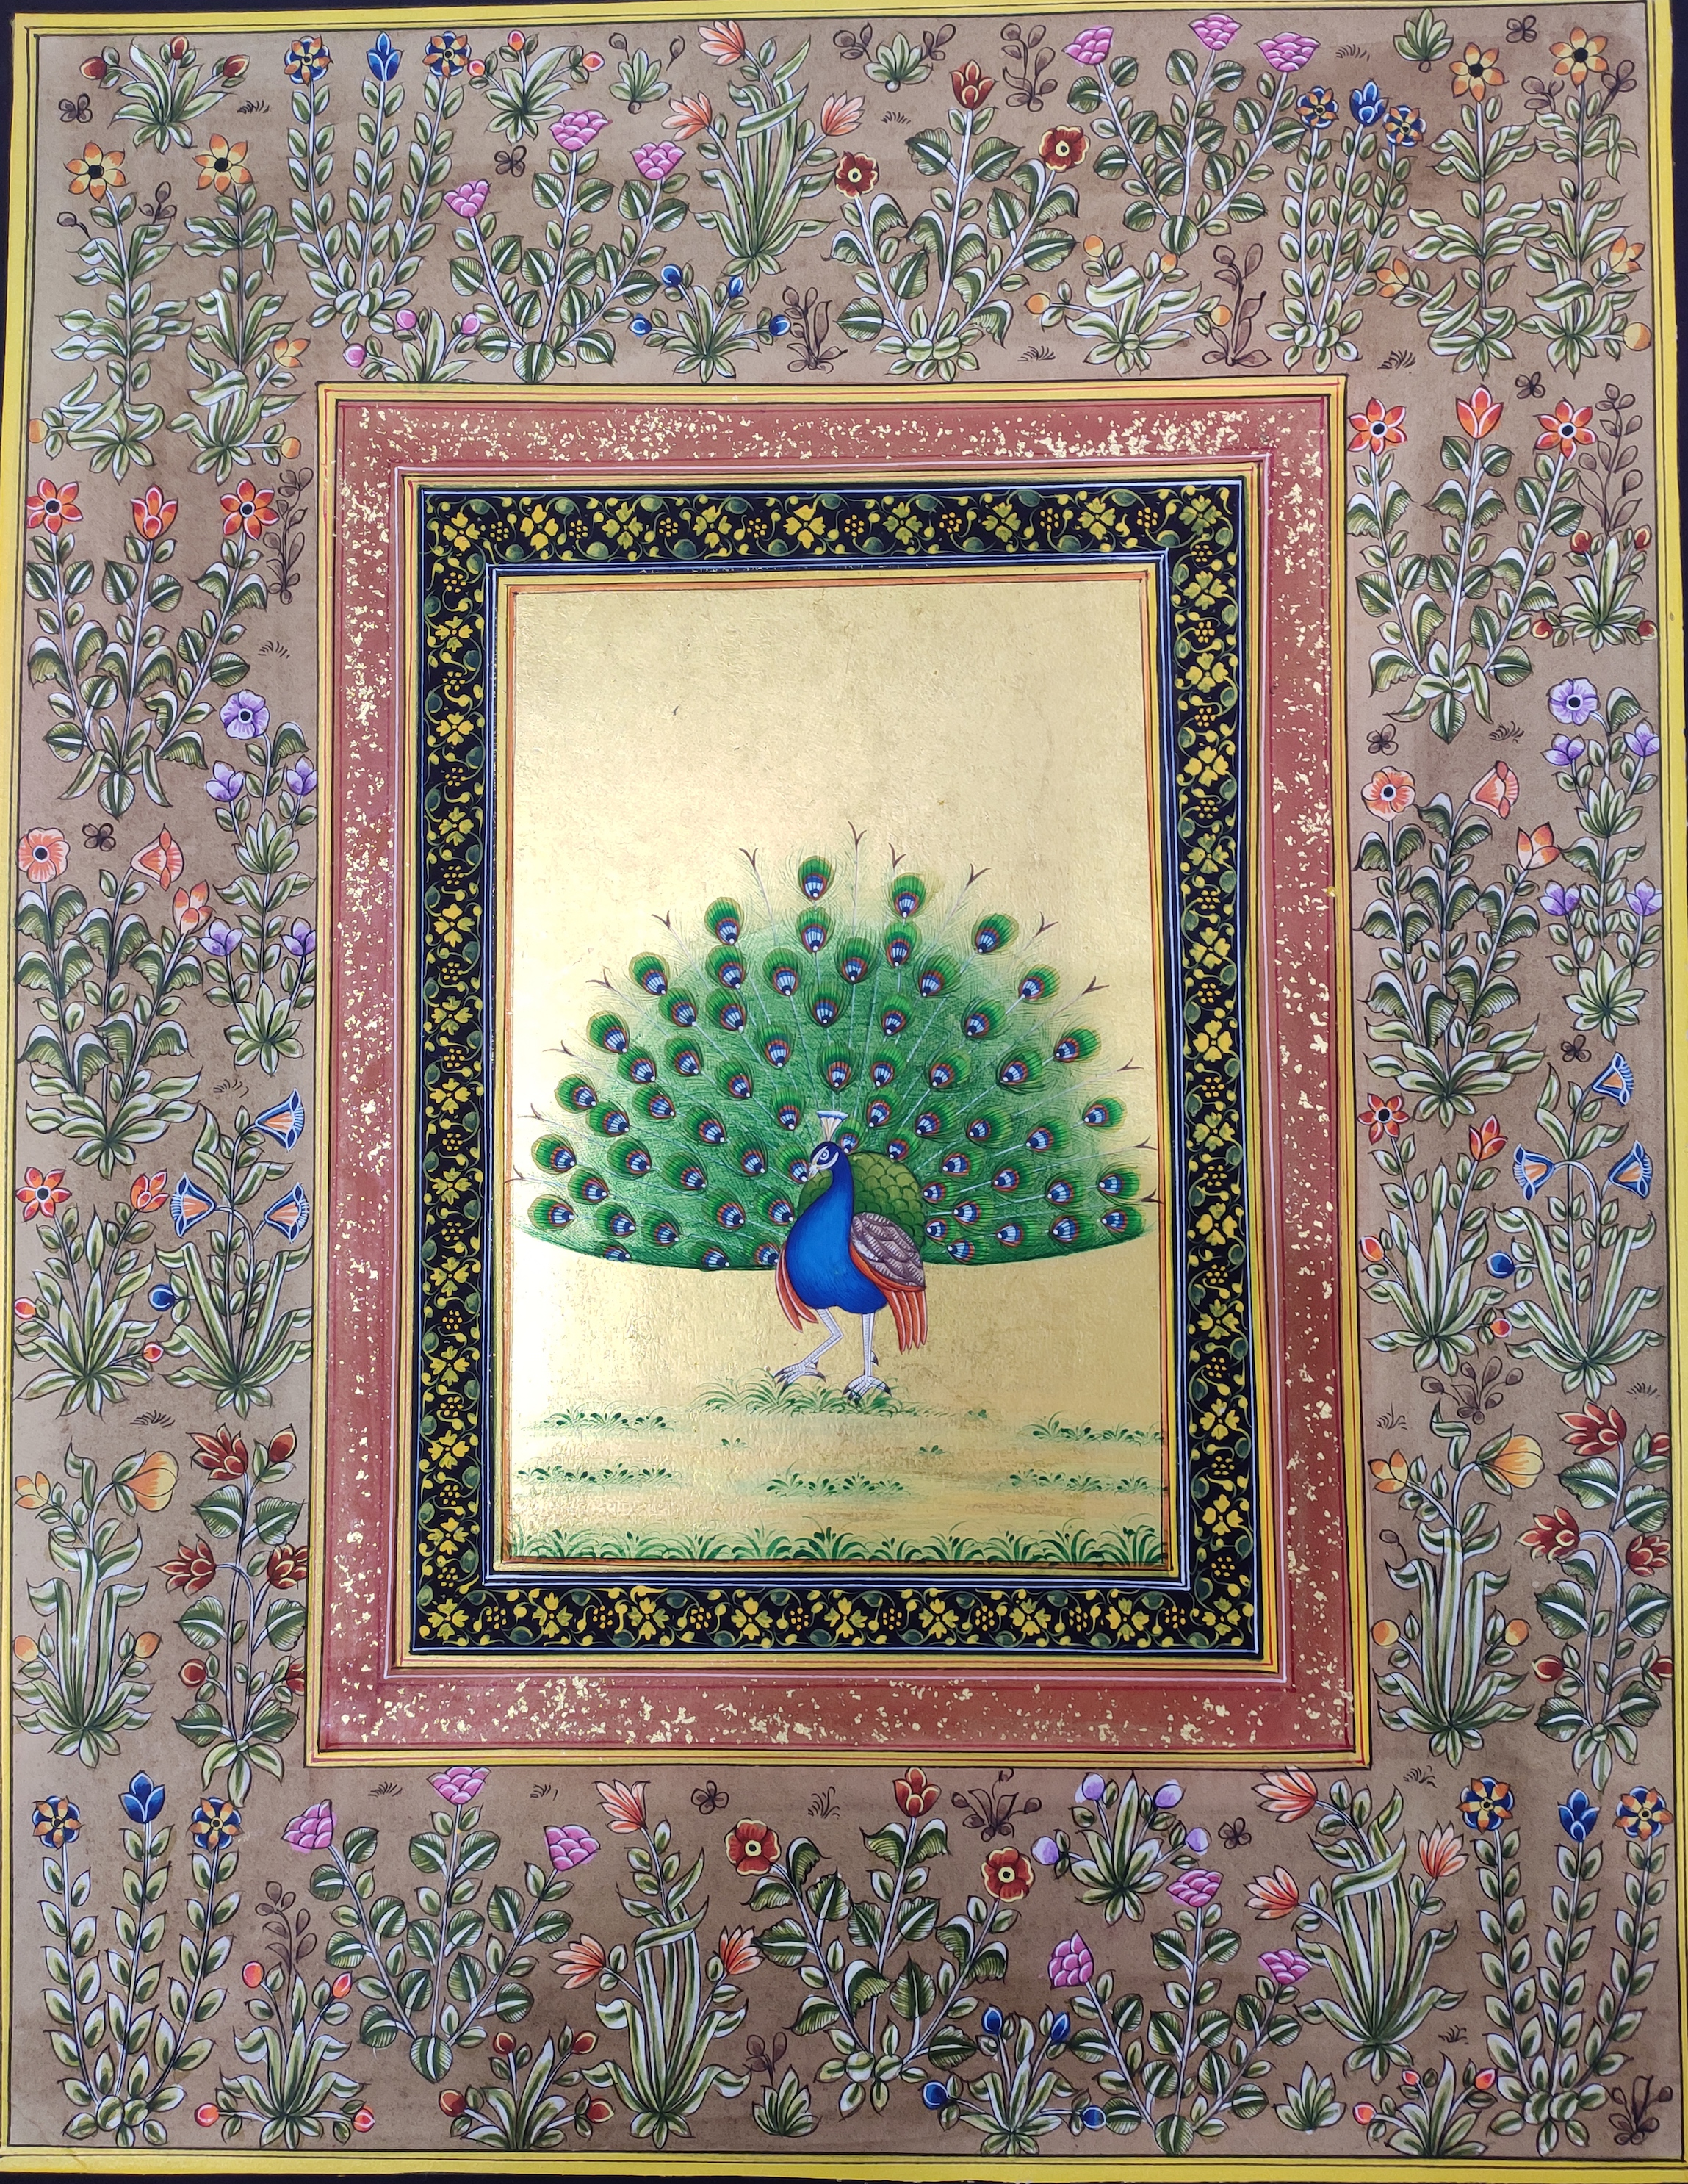 Marotia Family Art - A Royal Art from Jaipur